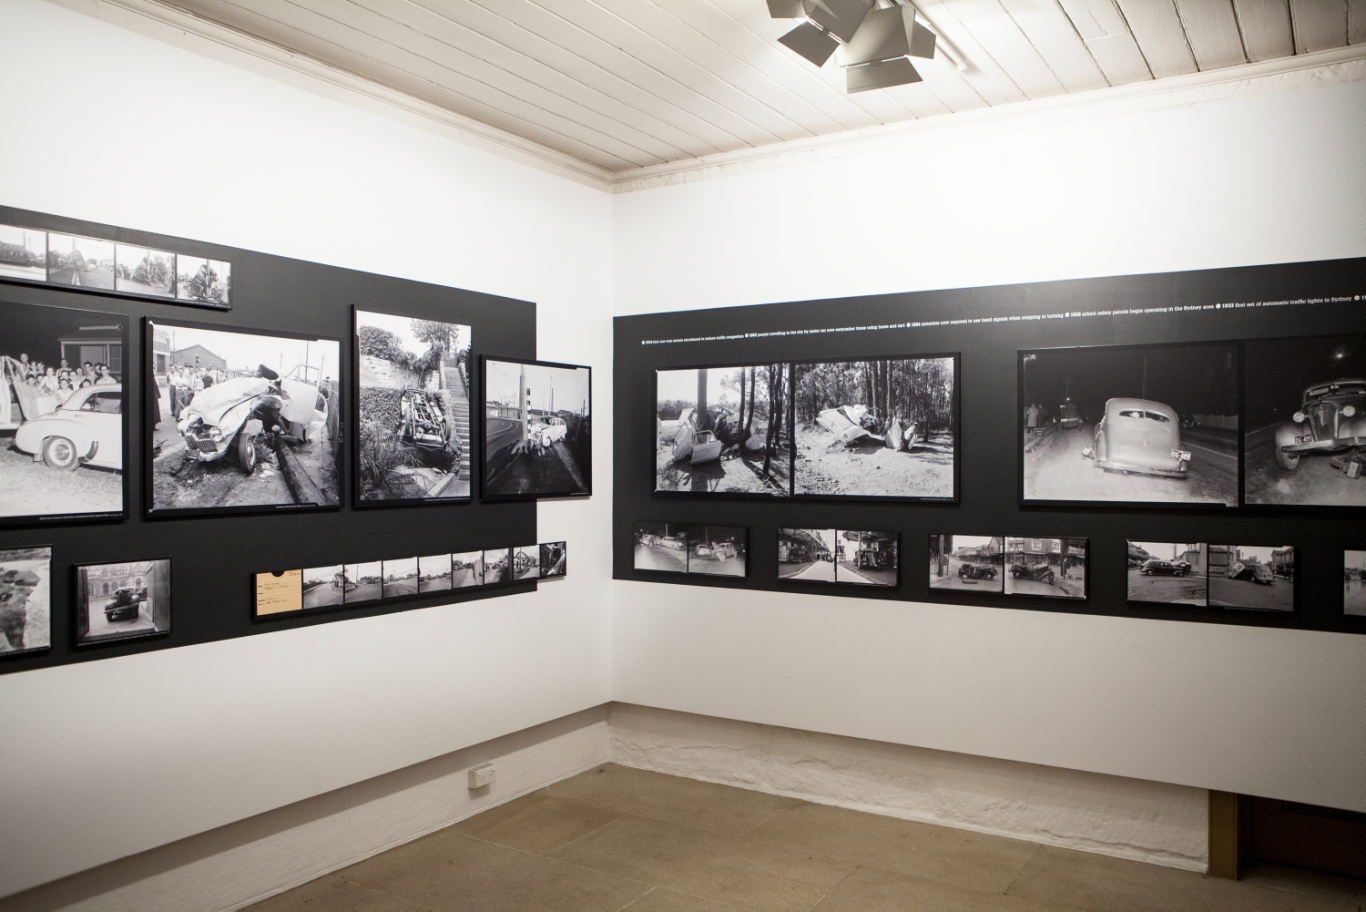 View of gallery space with black and white photographs mounted on white walls.